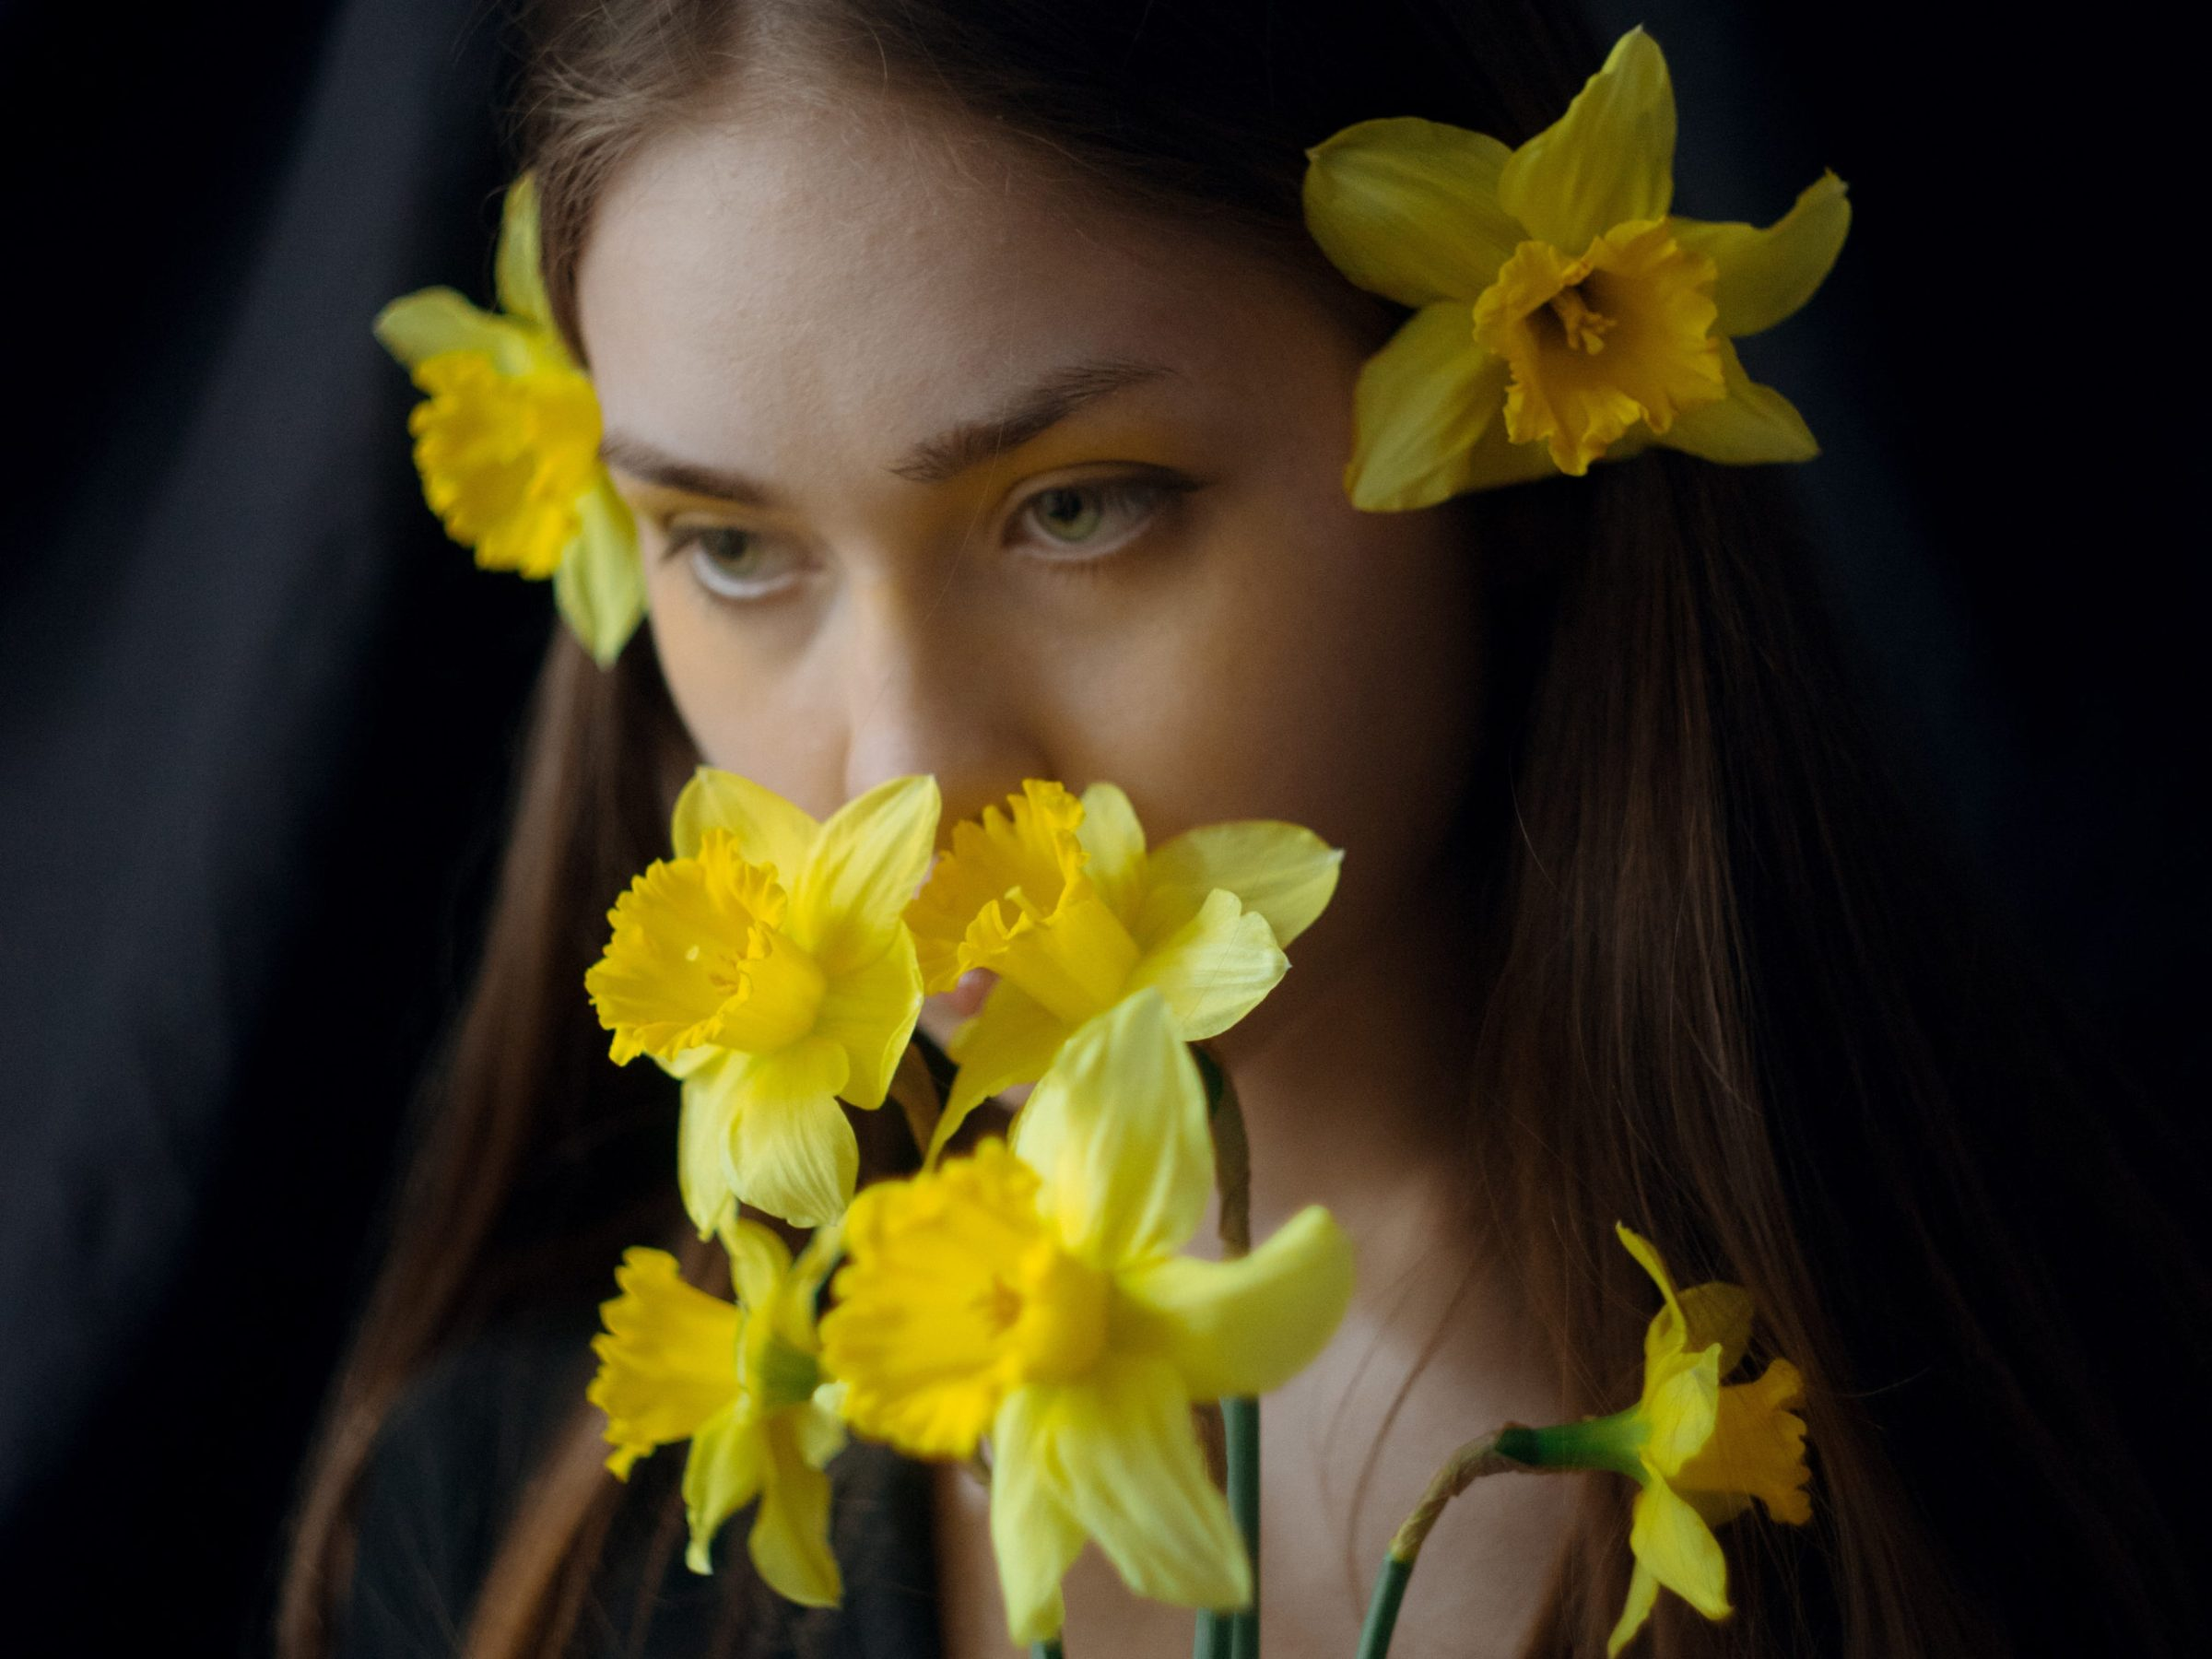 woman with flowers covering mouth, suggestive of not being heard, being silenced